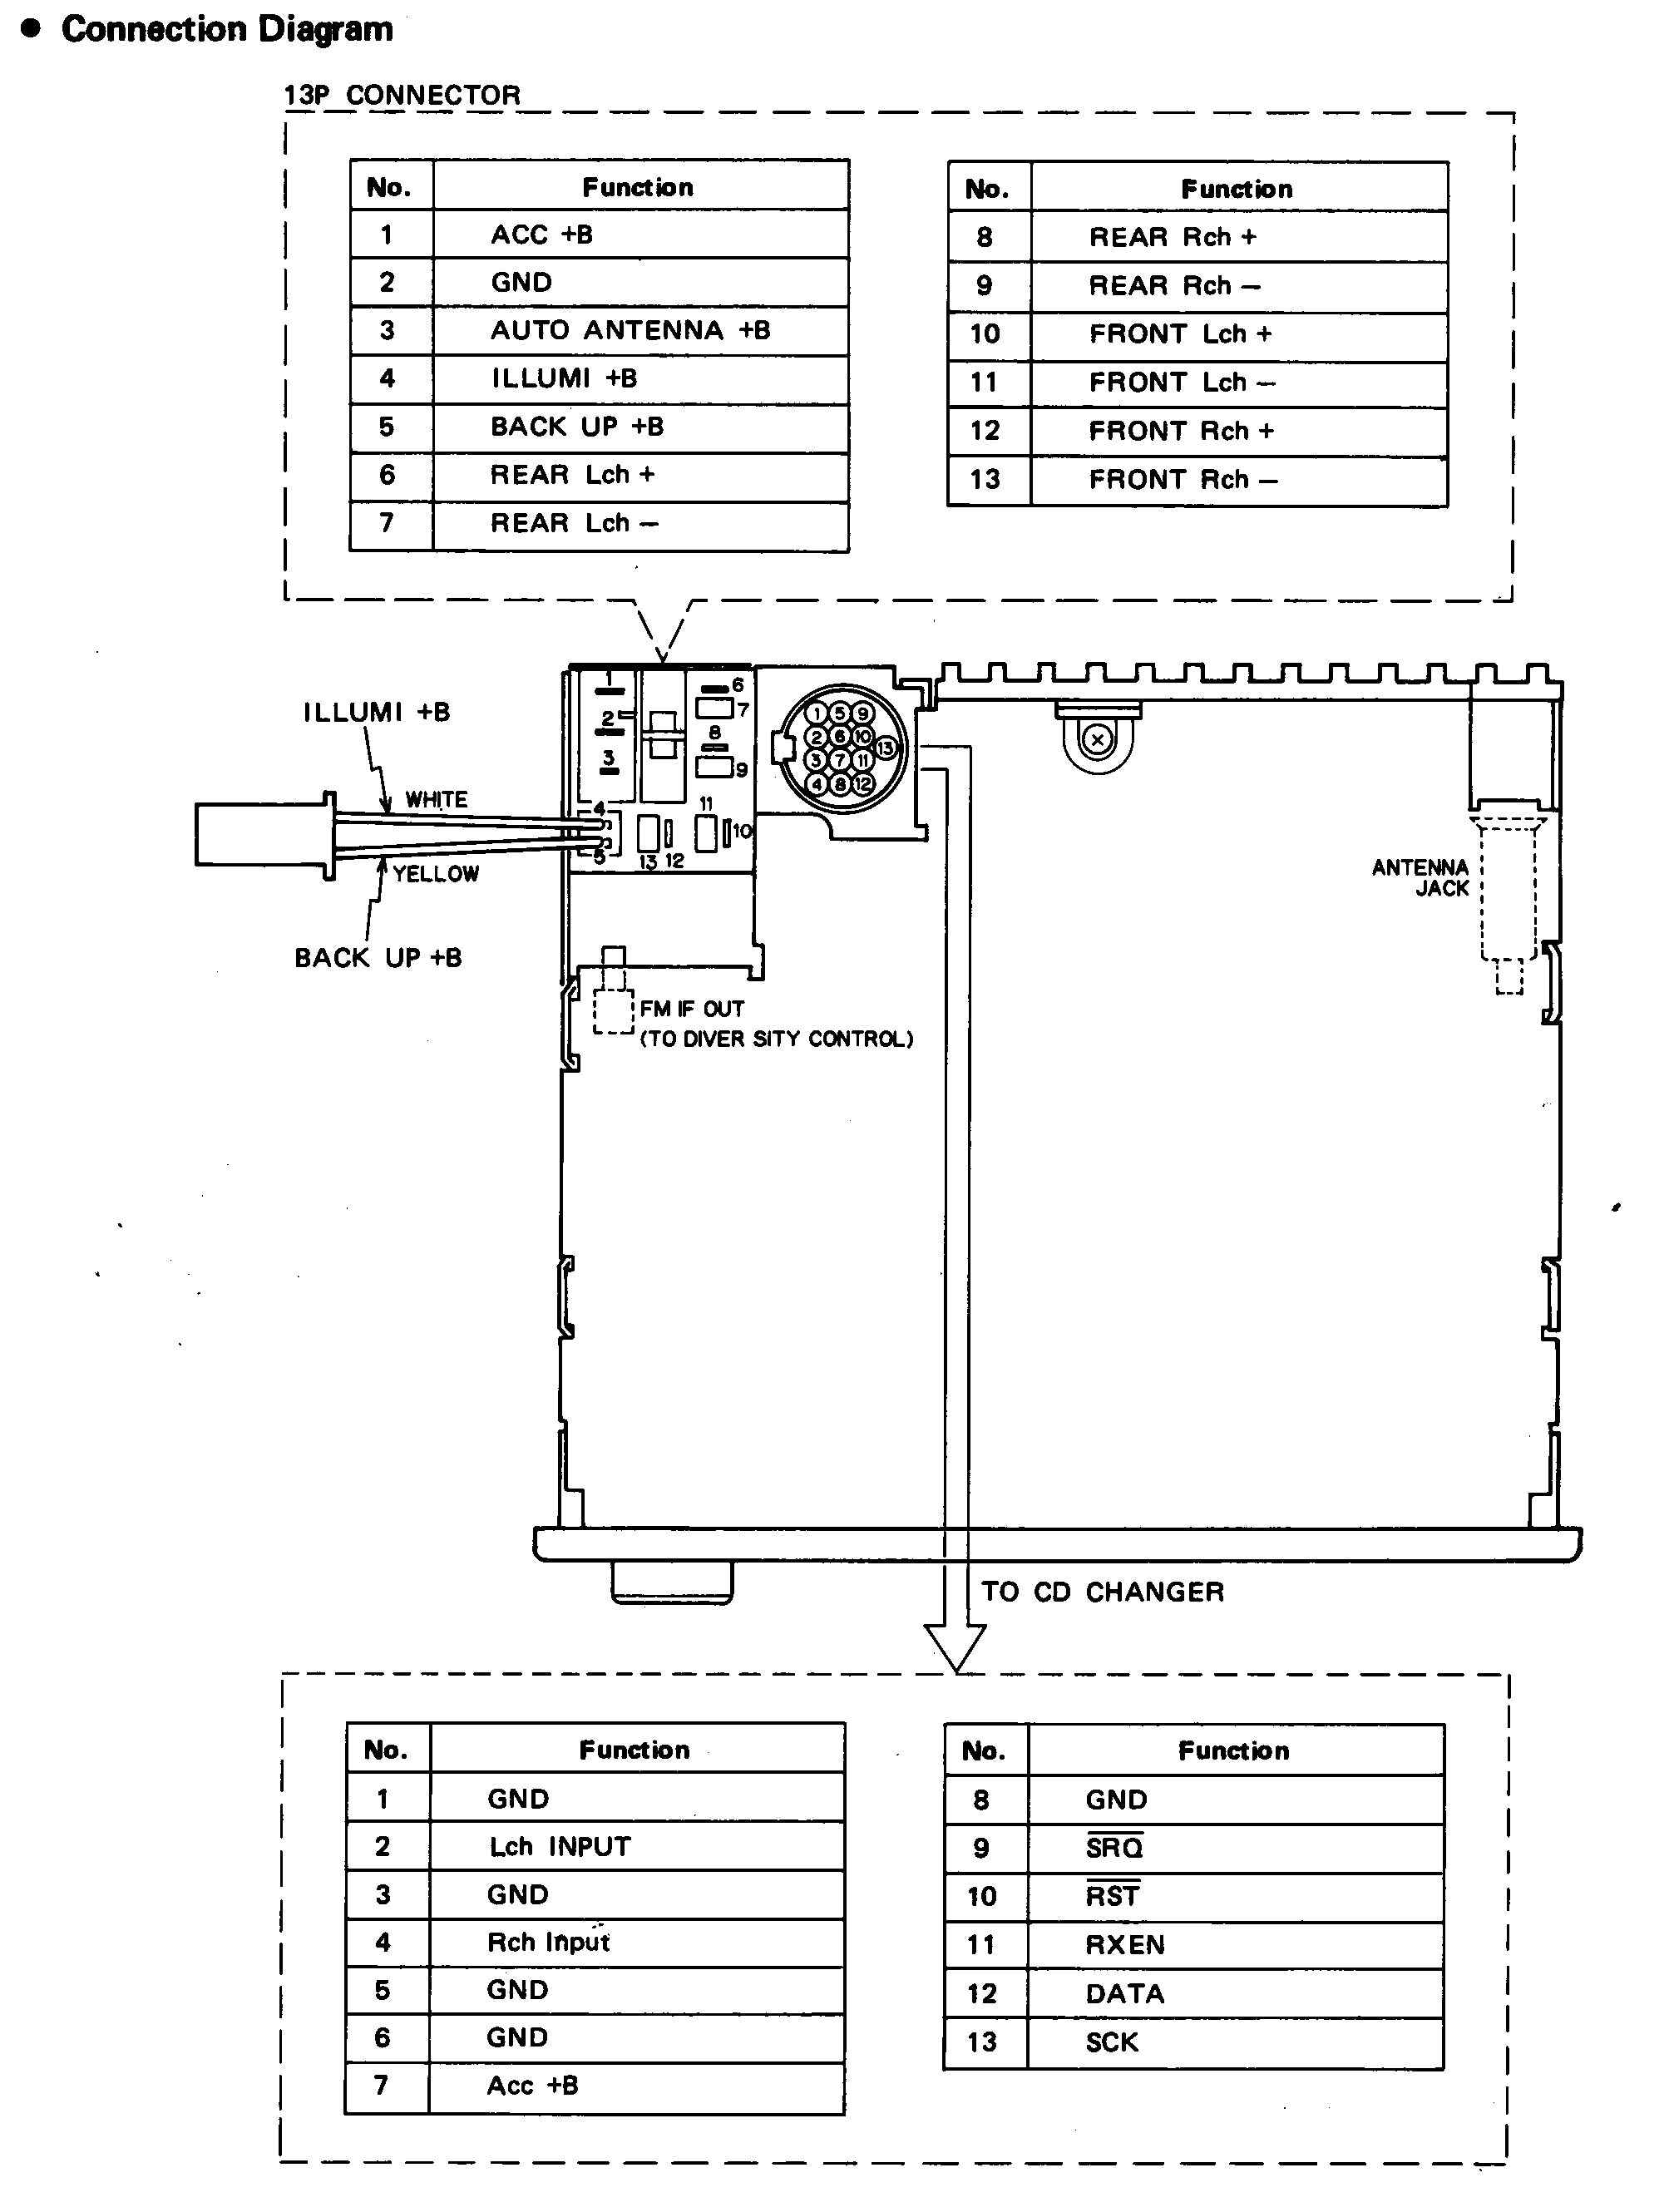 WireHarnessBMW121701 kenwood car radio wiring diagram wirdig readingrat net e46 speaker wiring diagram at bakdesigns.co